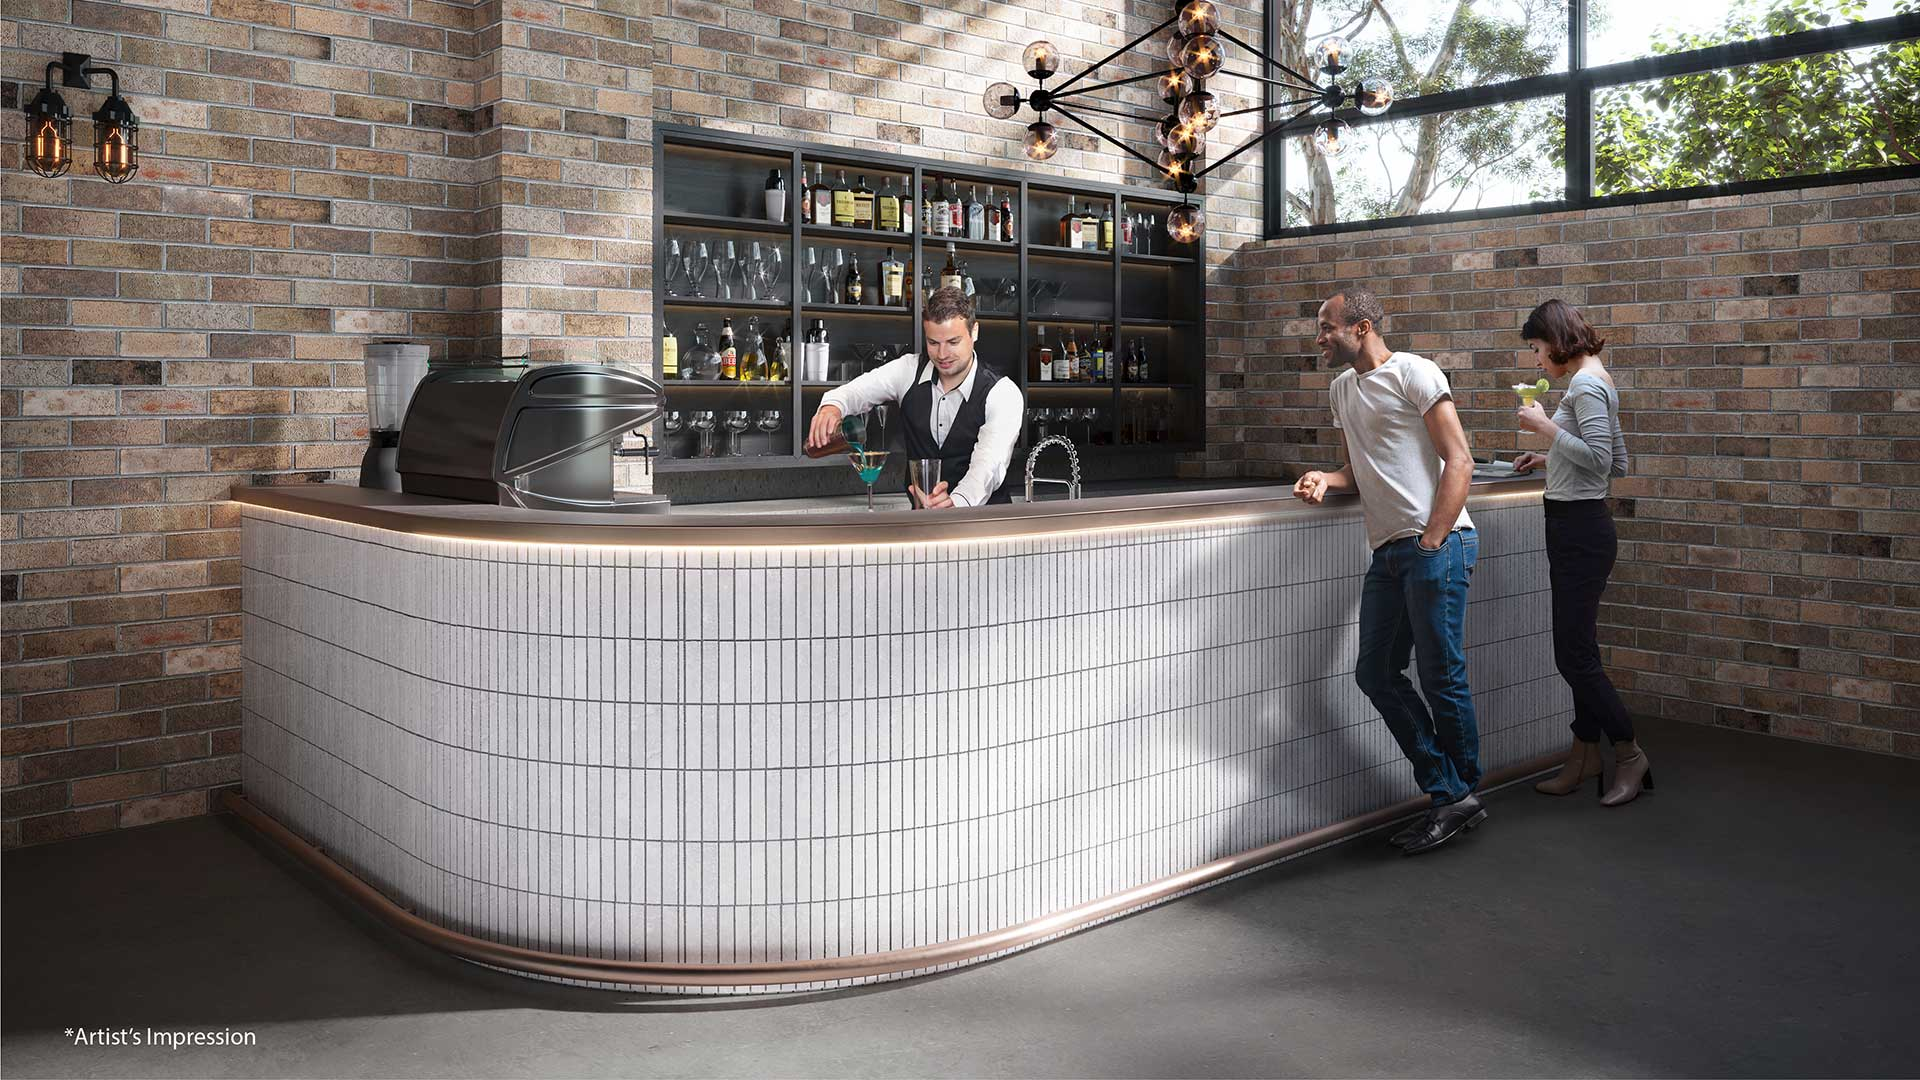 Stylish bar with guests (artists impression)